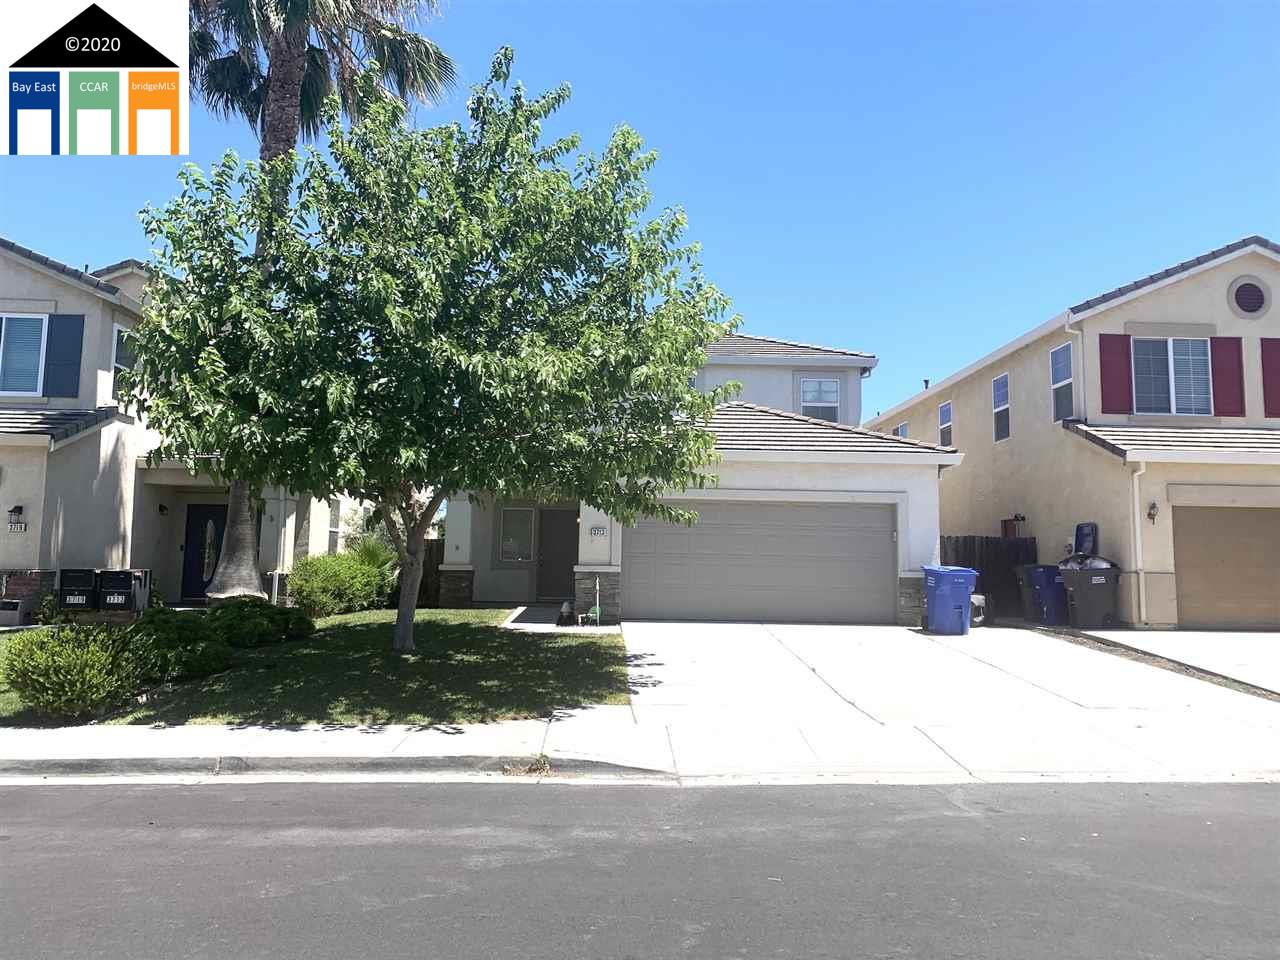 3713 Yacht Dr, DISCOVERY BAY, CA 94505